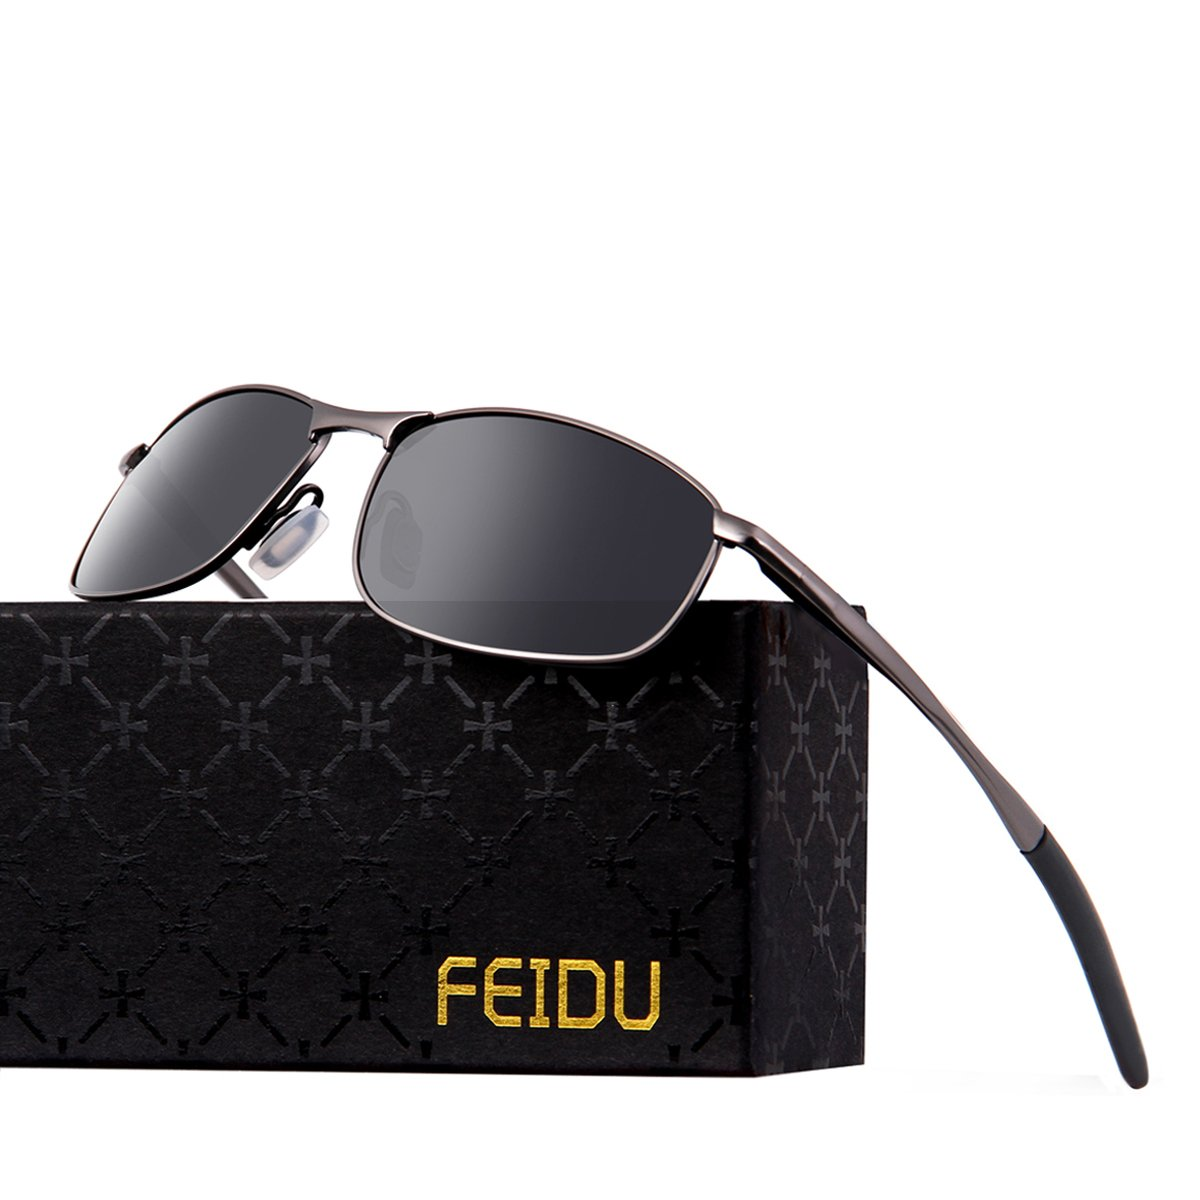 FEIDU Polarized Sport Mens Sunglasses HD Lens Metal Frame Driving Shades FD 9005 2.24) 9P-8UJ6-21K7